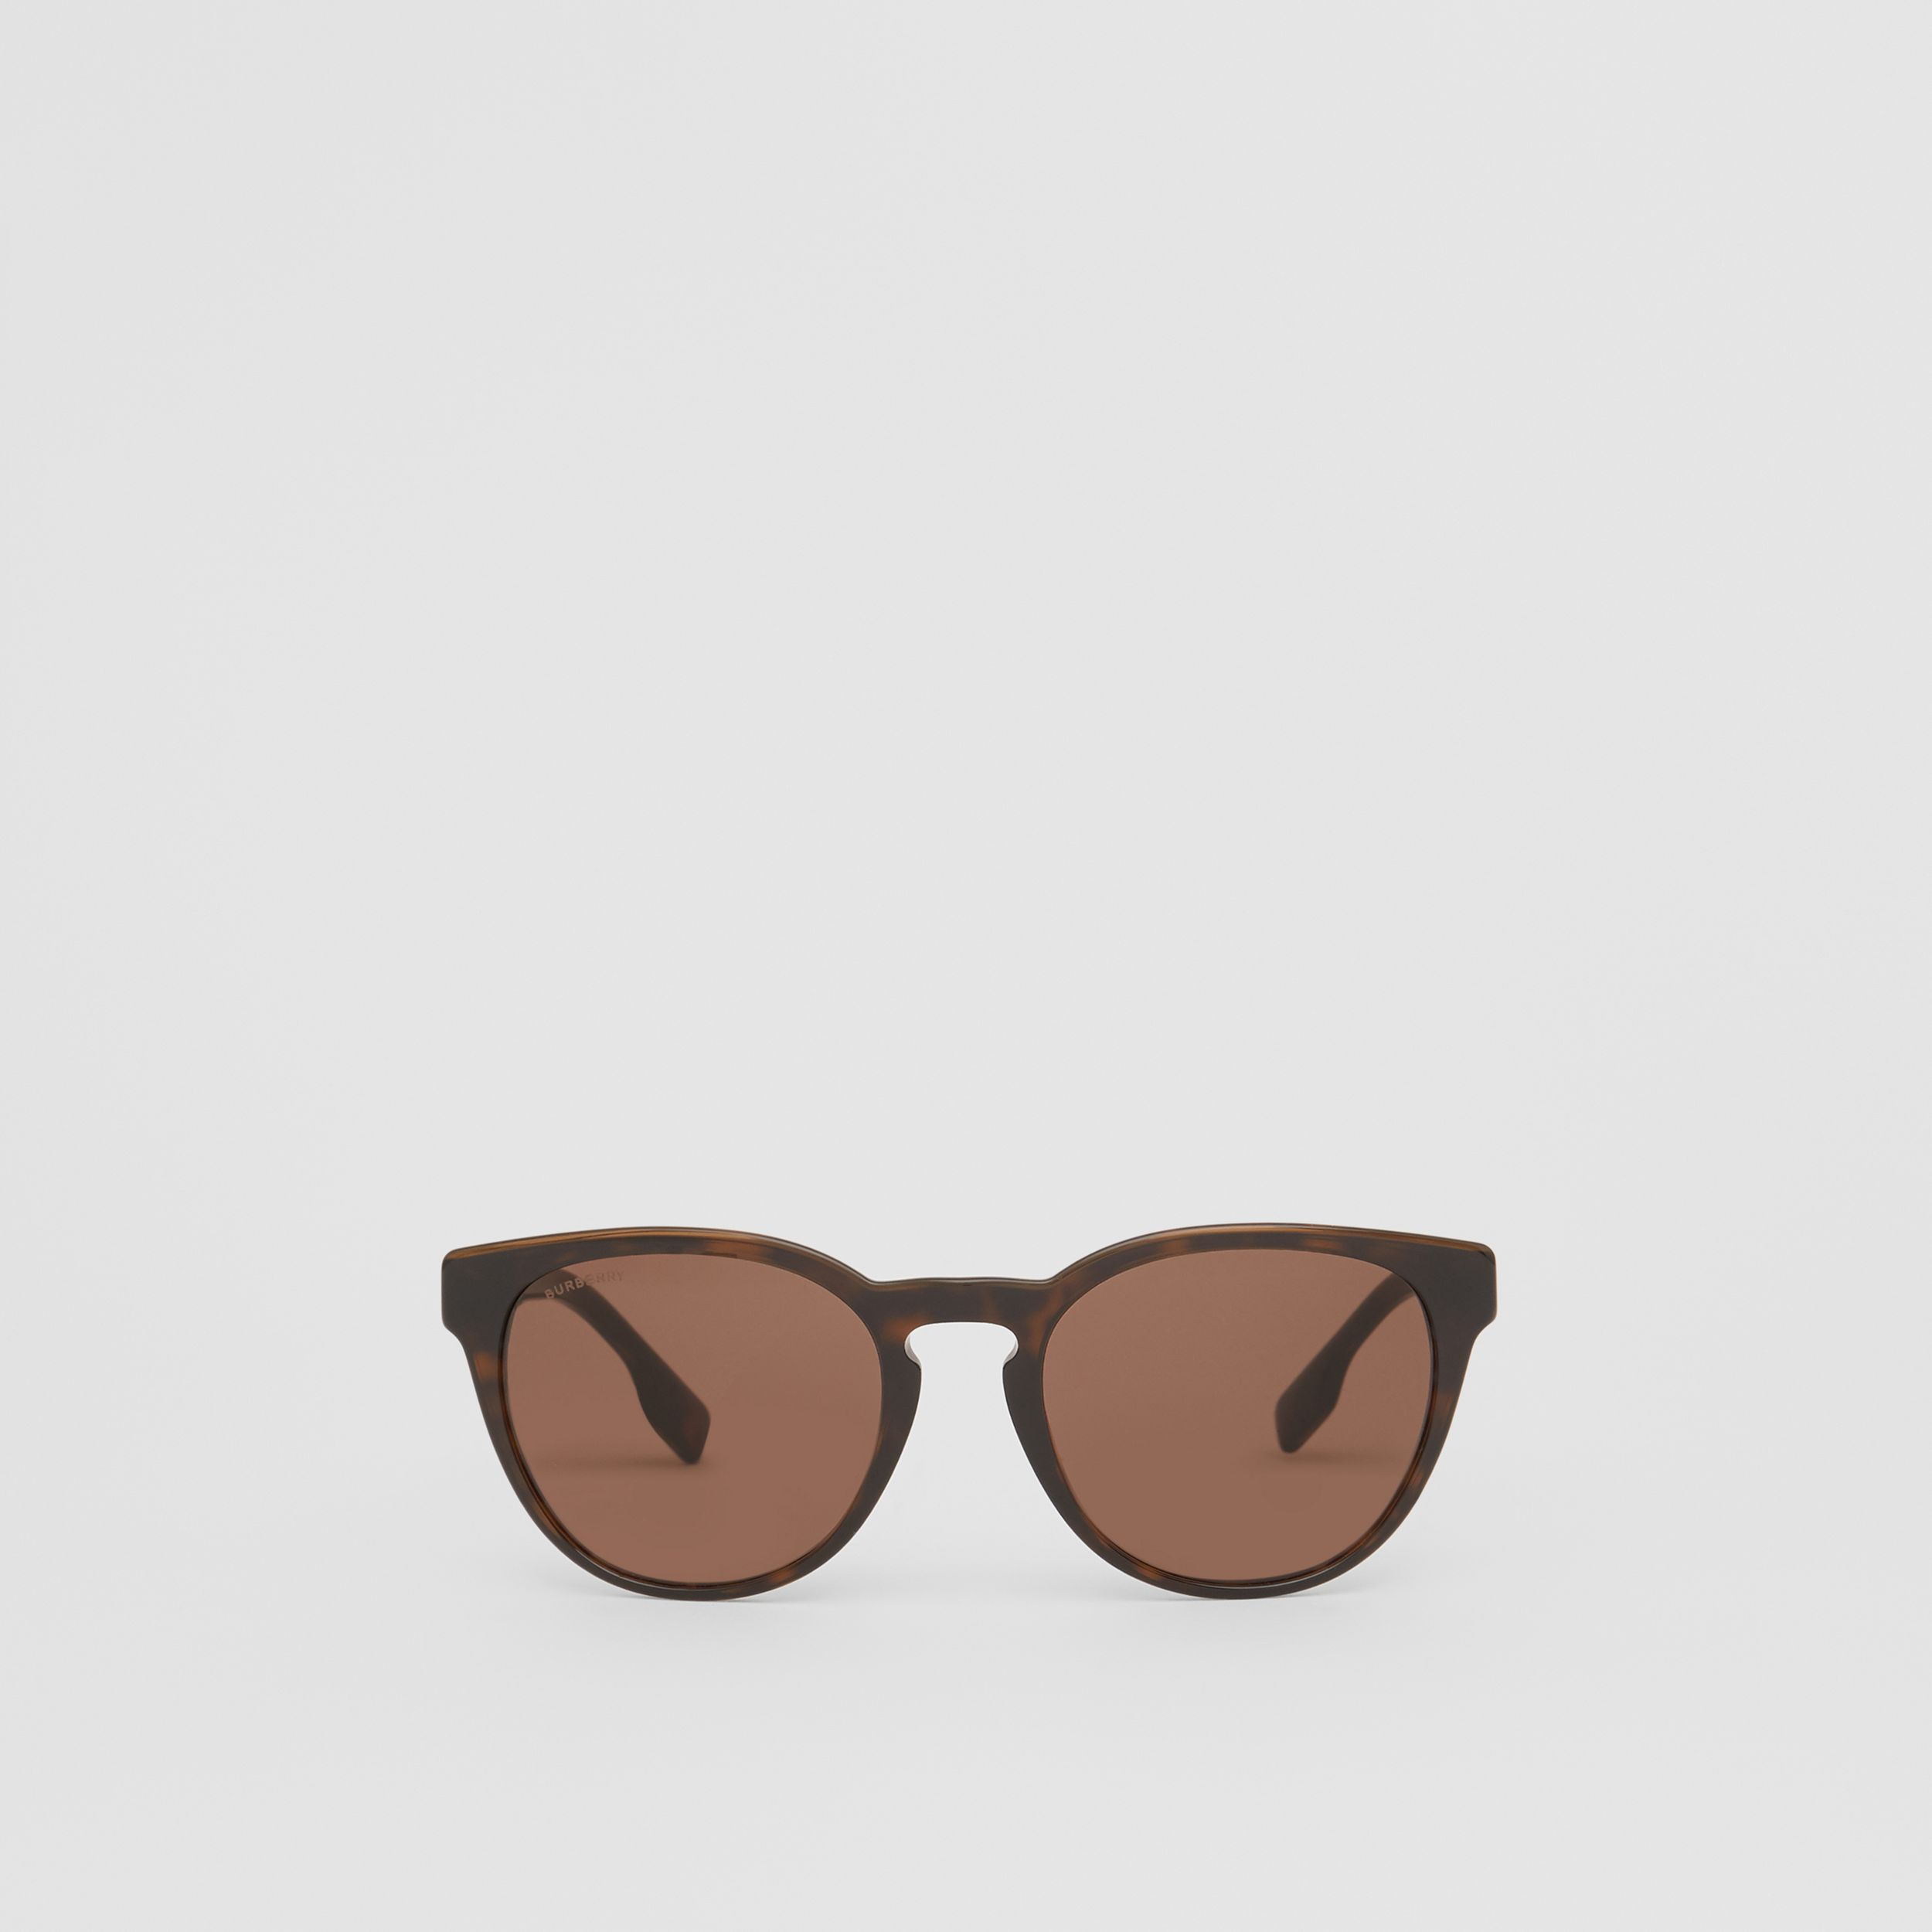 Round Frame Sunglasses in Tortoiseshell - Men | Burberry United Kingdom - 1